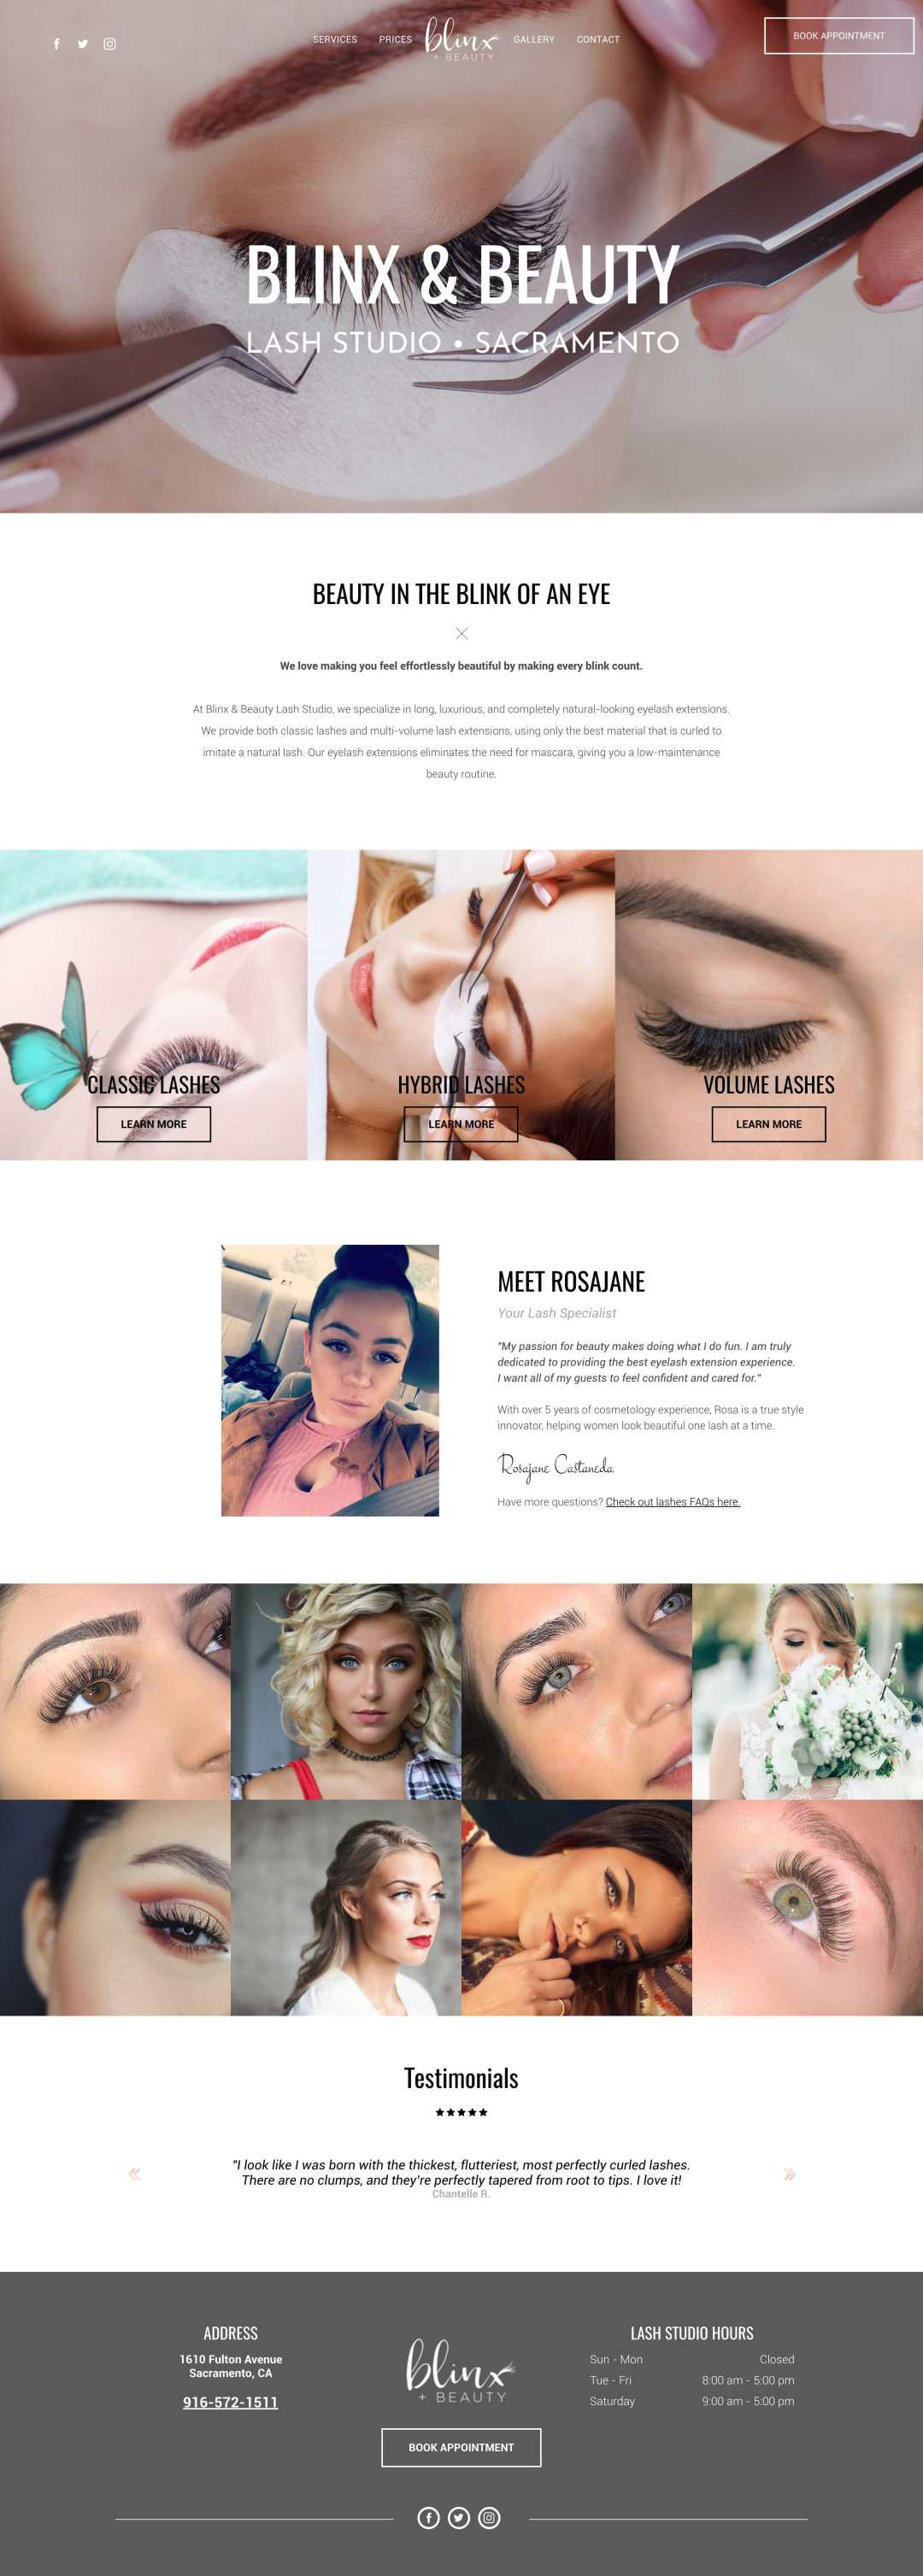 Eyelash Extensions Branding Website Excelled Designs